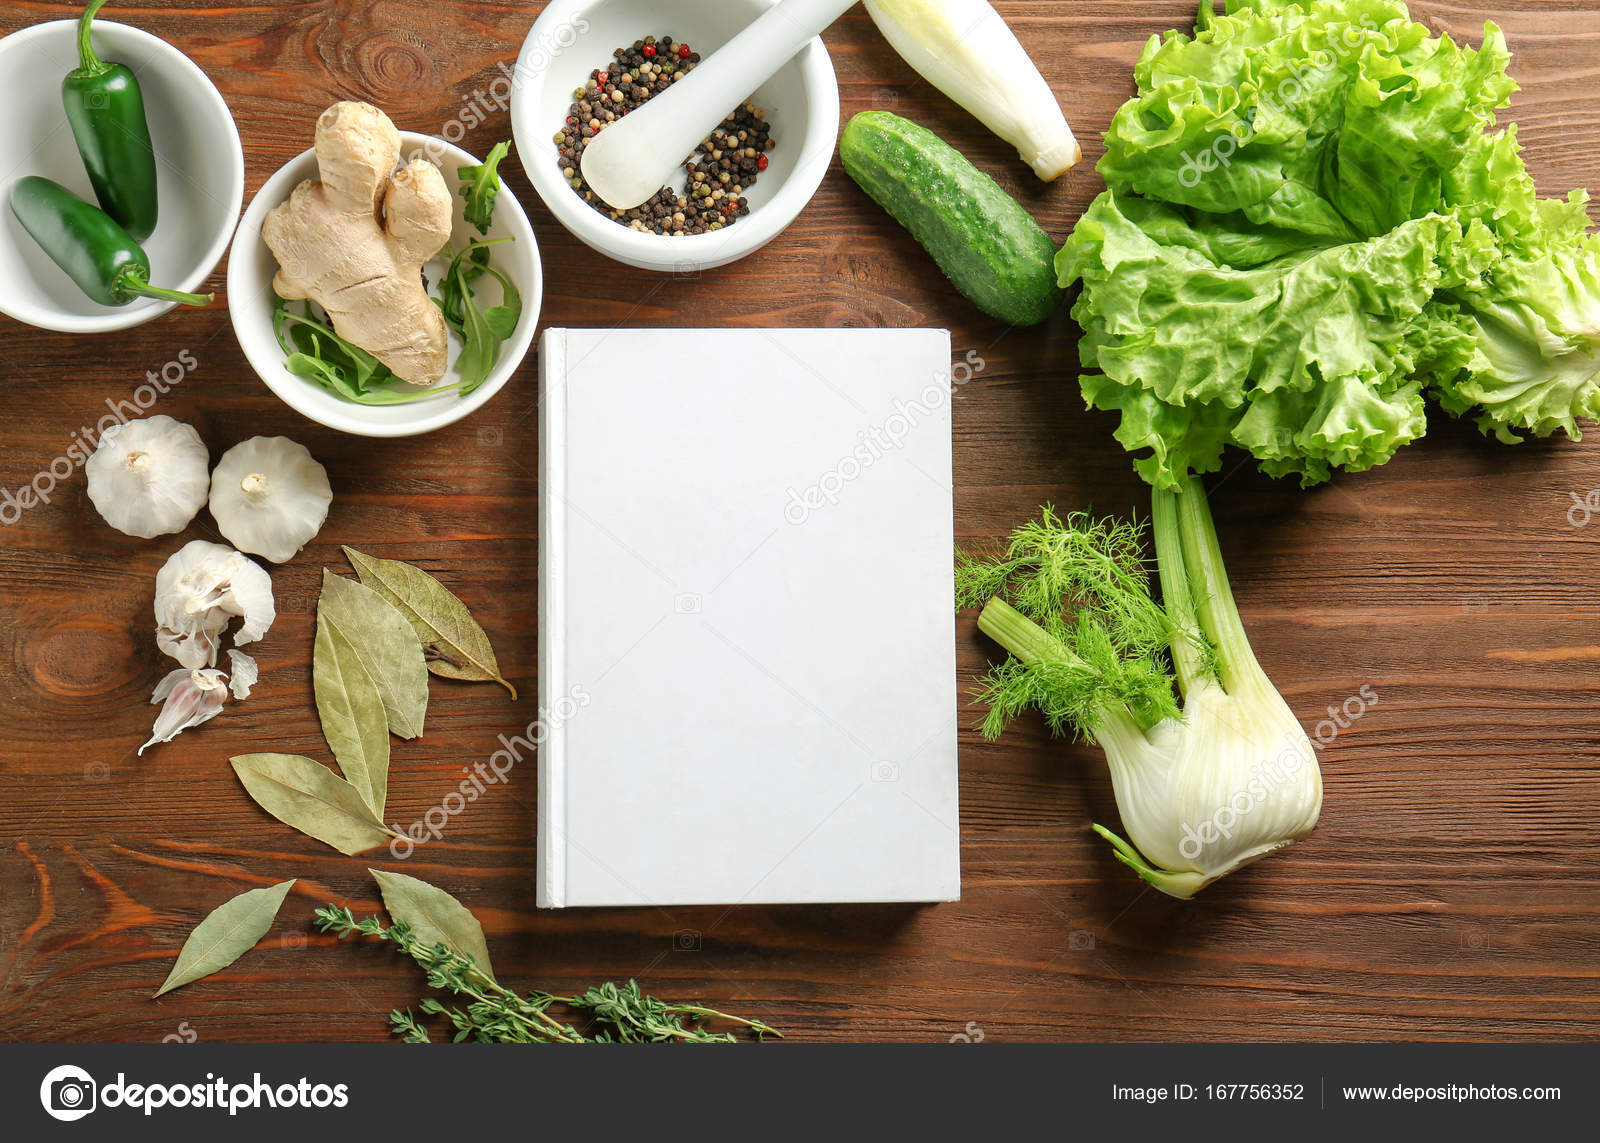 Notebook and vegetables on kitchen table. Cooking classes concept ...